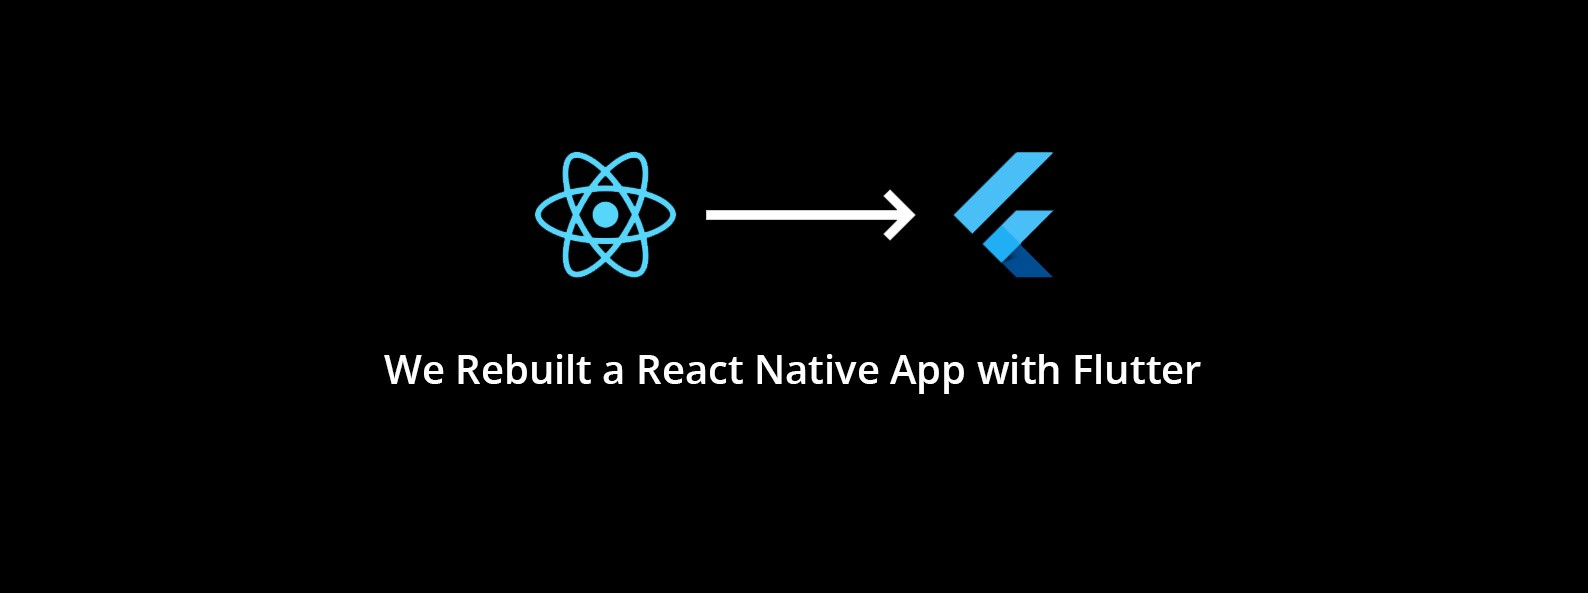 We Rebuilt a React Native App with Flutter - The GeekyAnts Blog